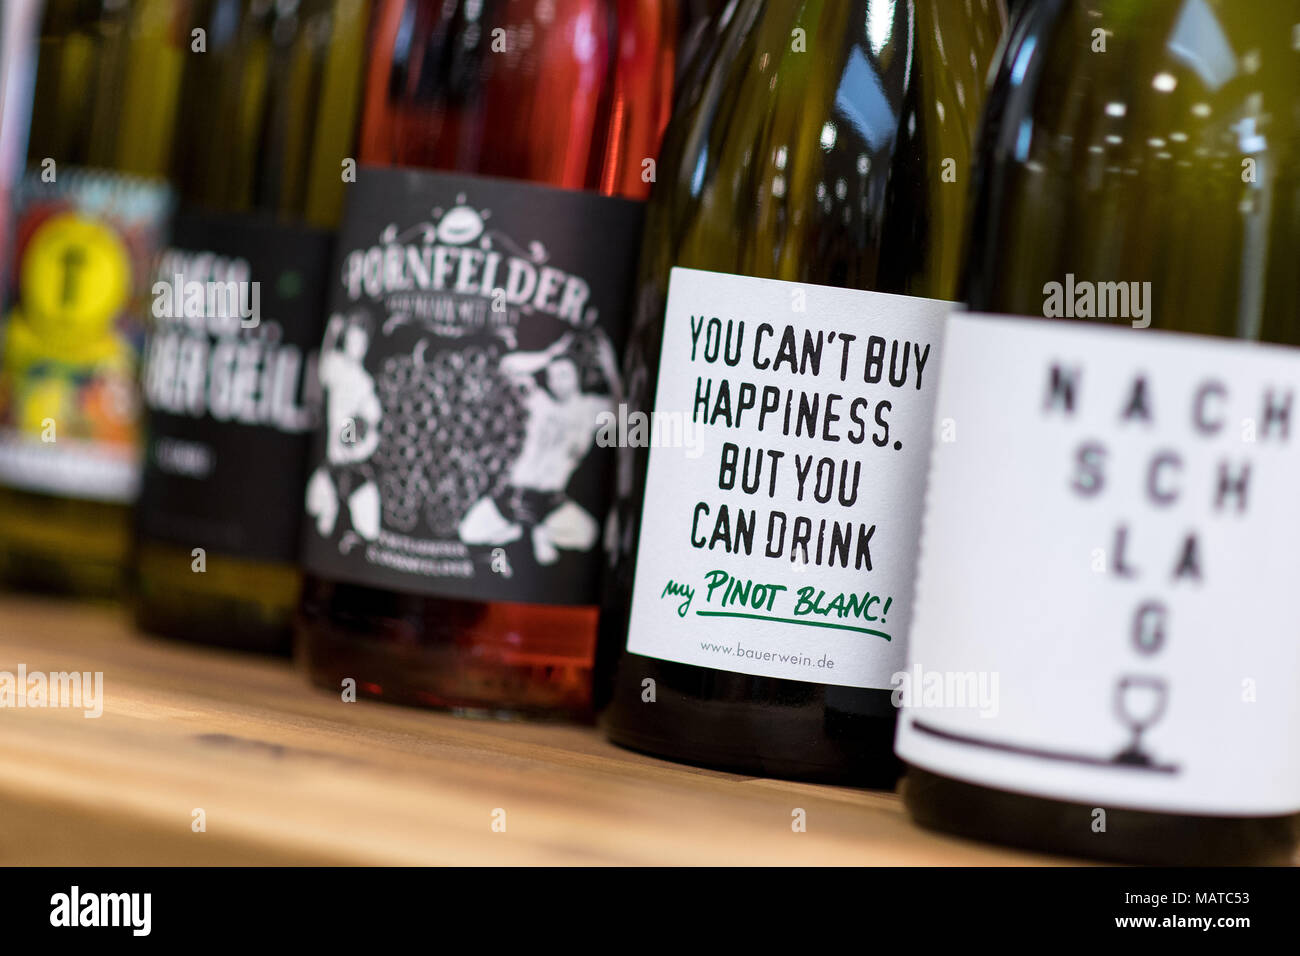 15 March 2018, Germany, Meerbusch: Wines with creatively designed labels and names stand on a table in a wine shop. Photo: Marius Becker/dpa - Stock Image